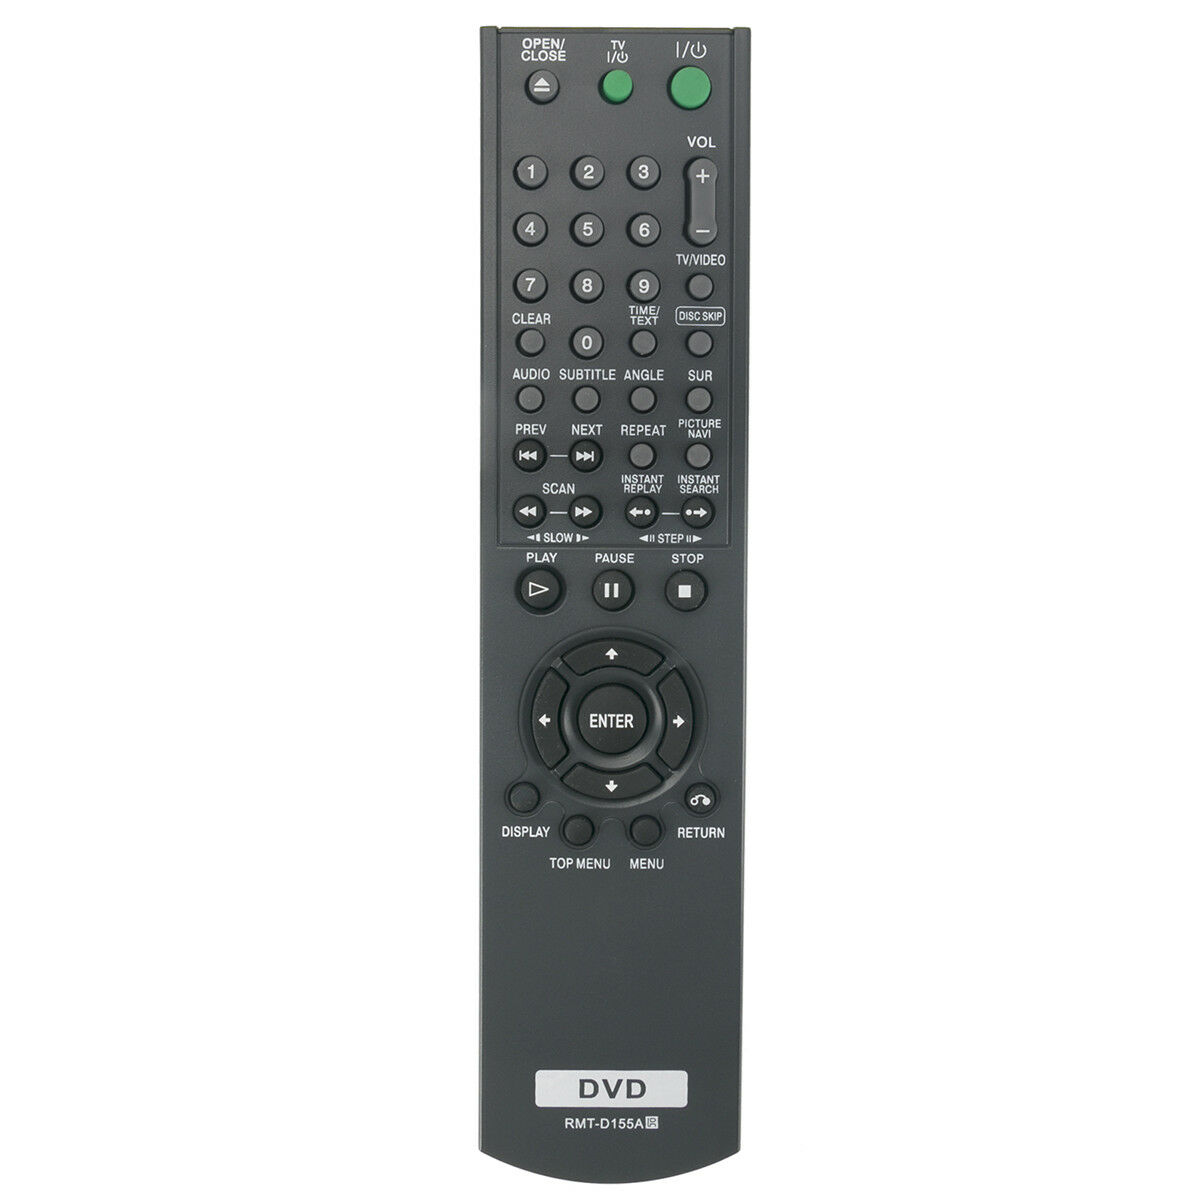 New RMT-D155A Replace Remote Control for Sony CD DVD Player